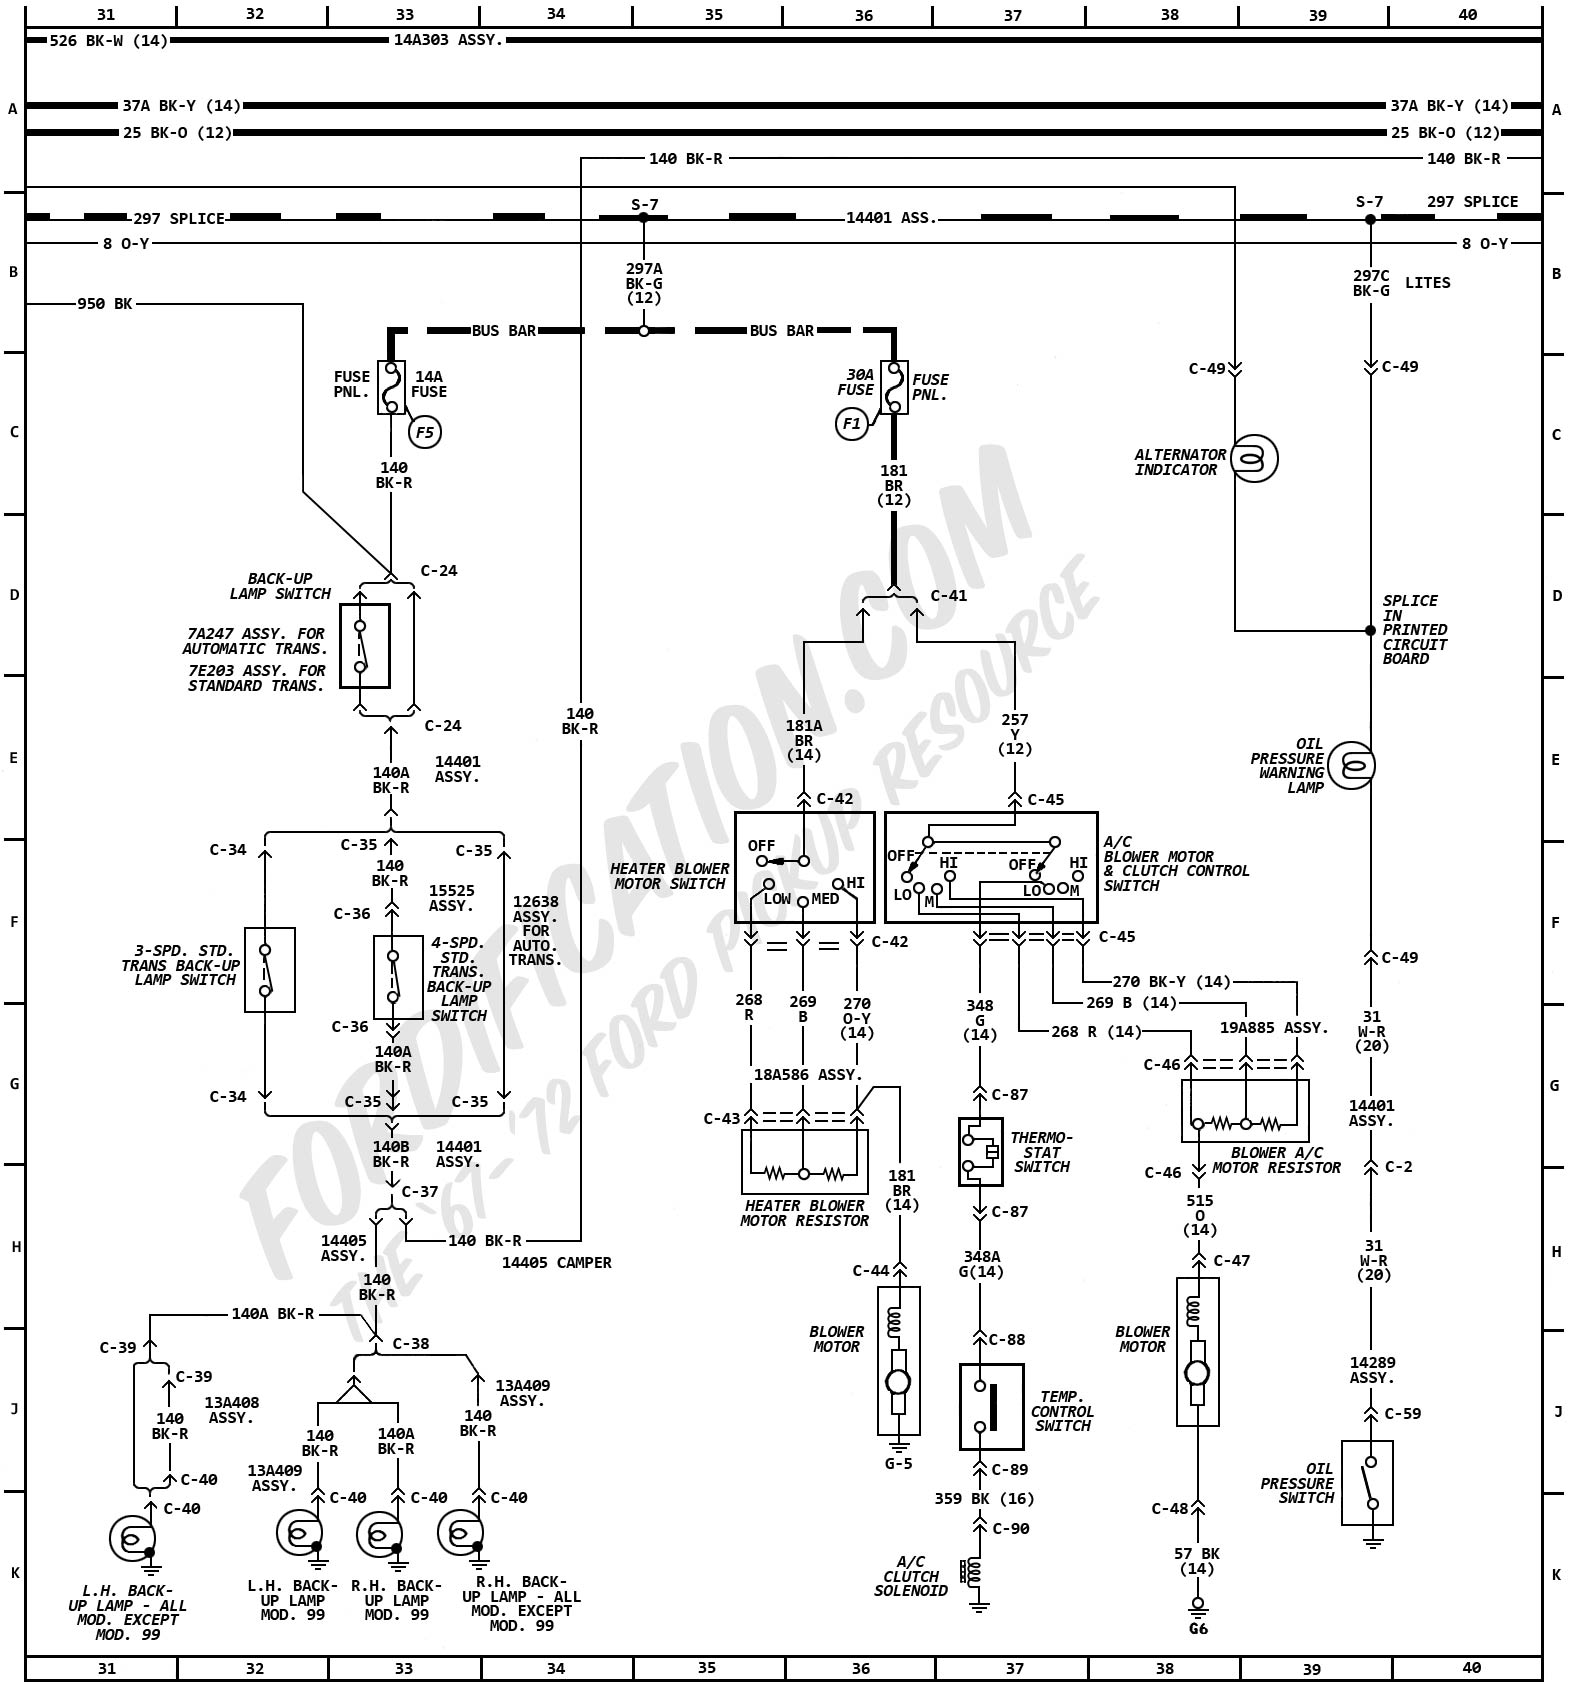 1972MasterWiring_04 1972 ford truck wiring diagrams fordification com wiring diagram 1972 ford f250 at edmiracle.co